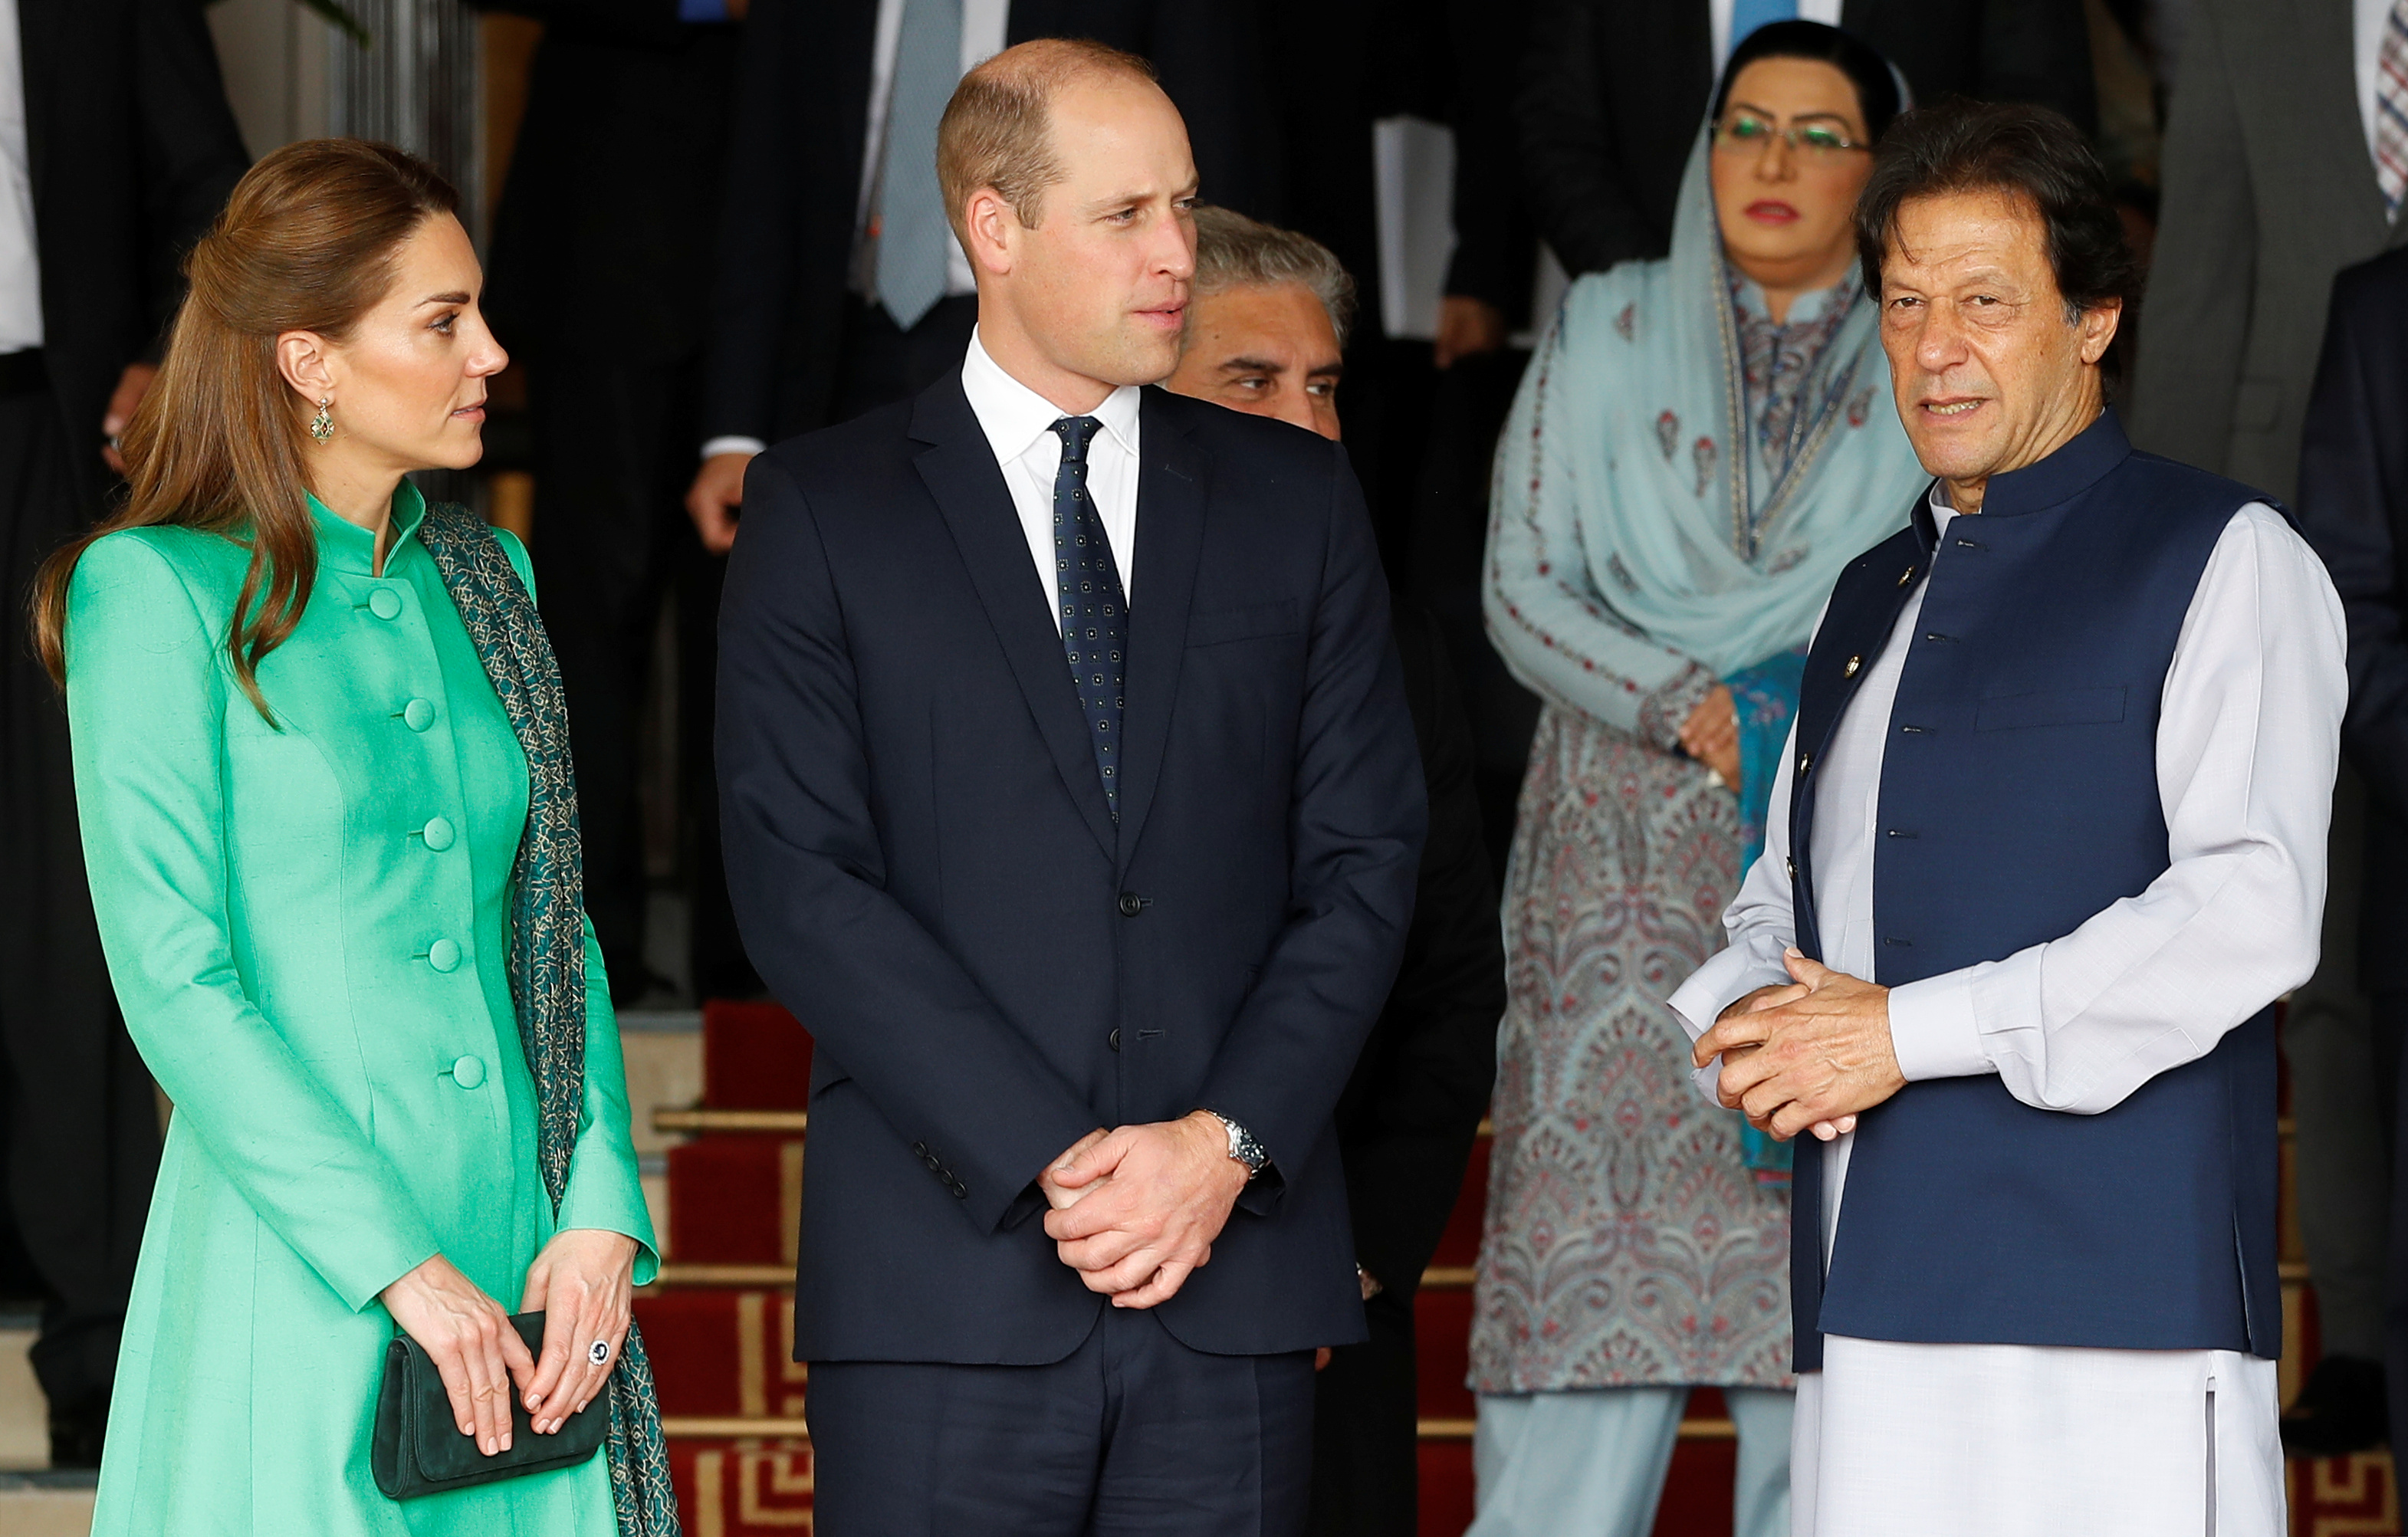 Britain's Prince William and Catherine, Duchess of Cambridge, talk with Pakistan's Prime Minister Imran Khan as they leave after a meeting in Islamabad, Pakistan October 15, 2019.  (Photo: REUTERS/Peter Nicholls)